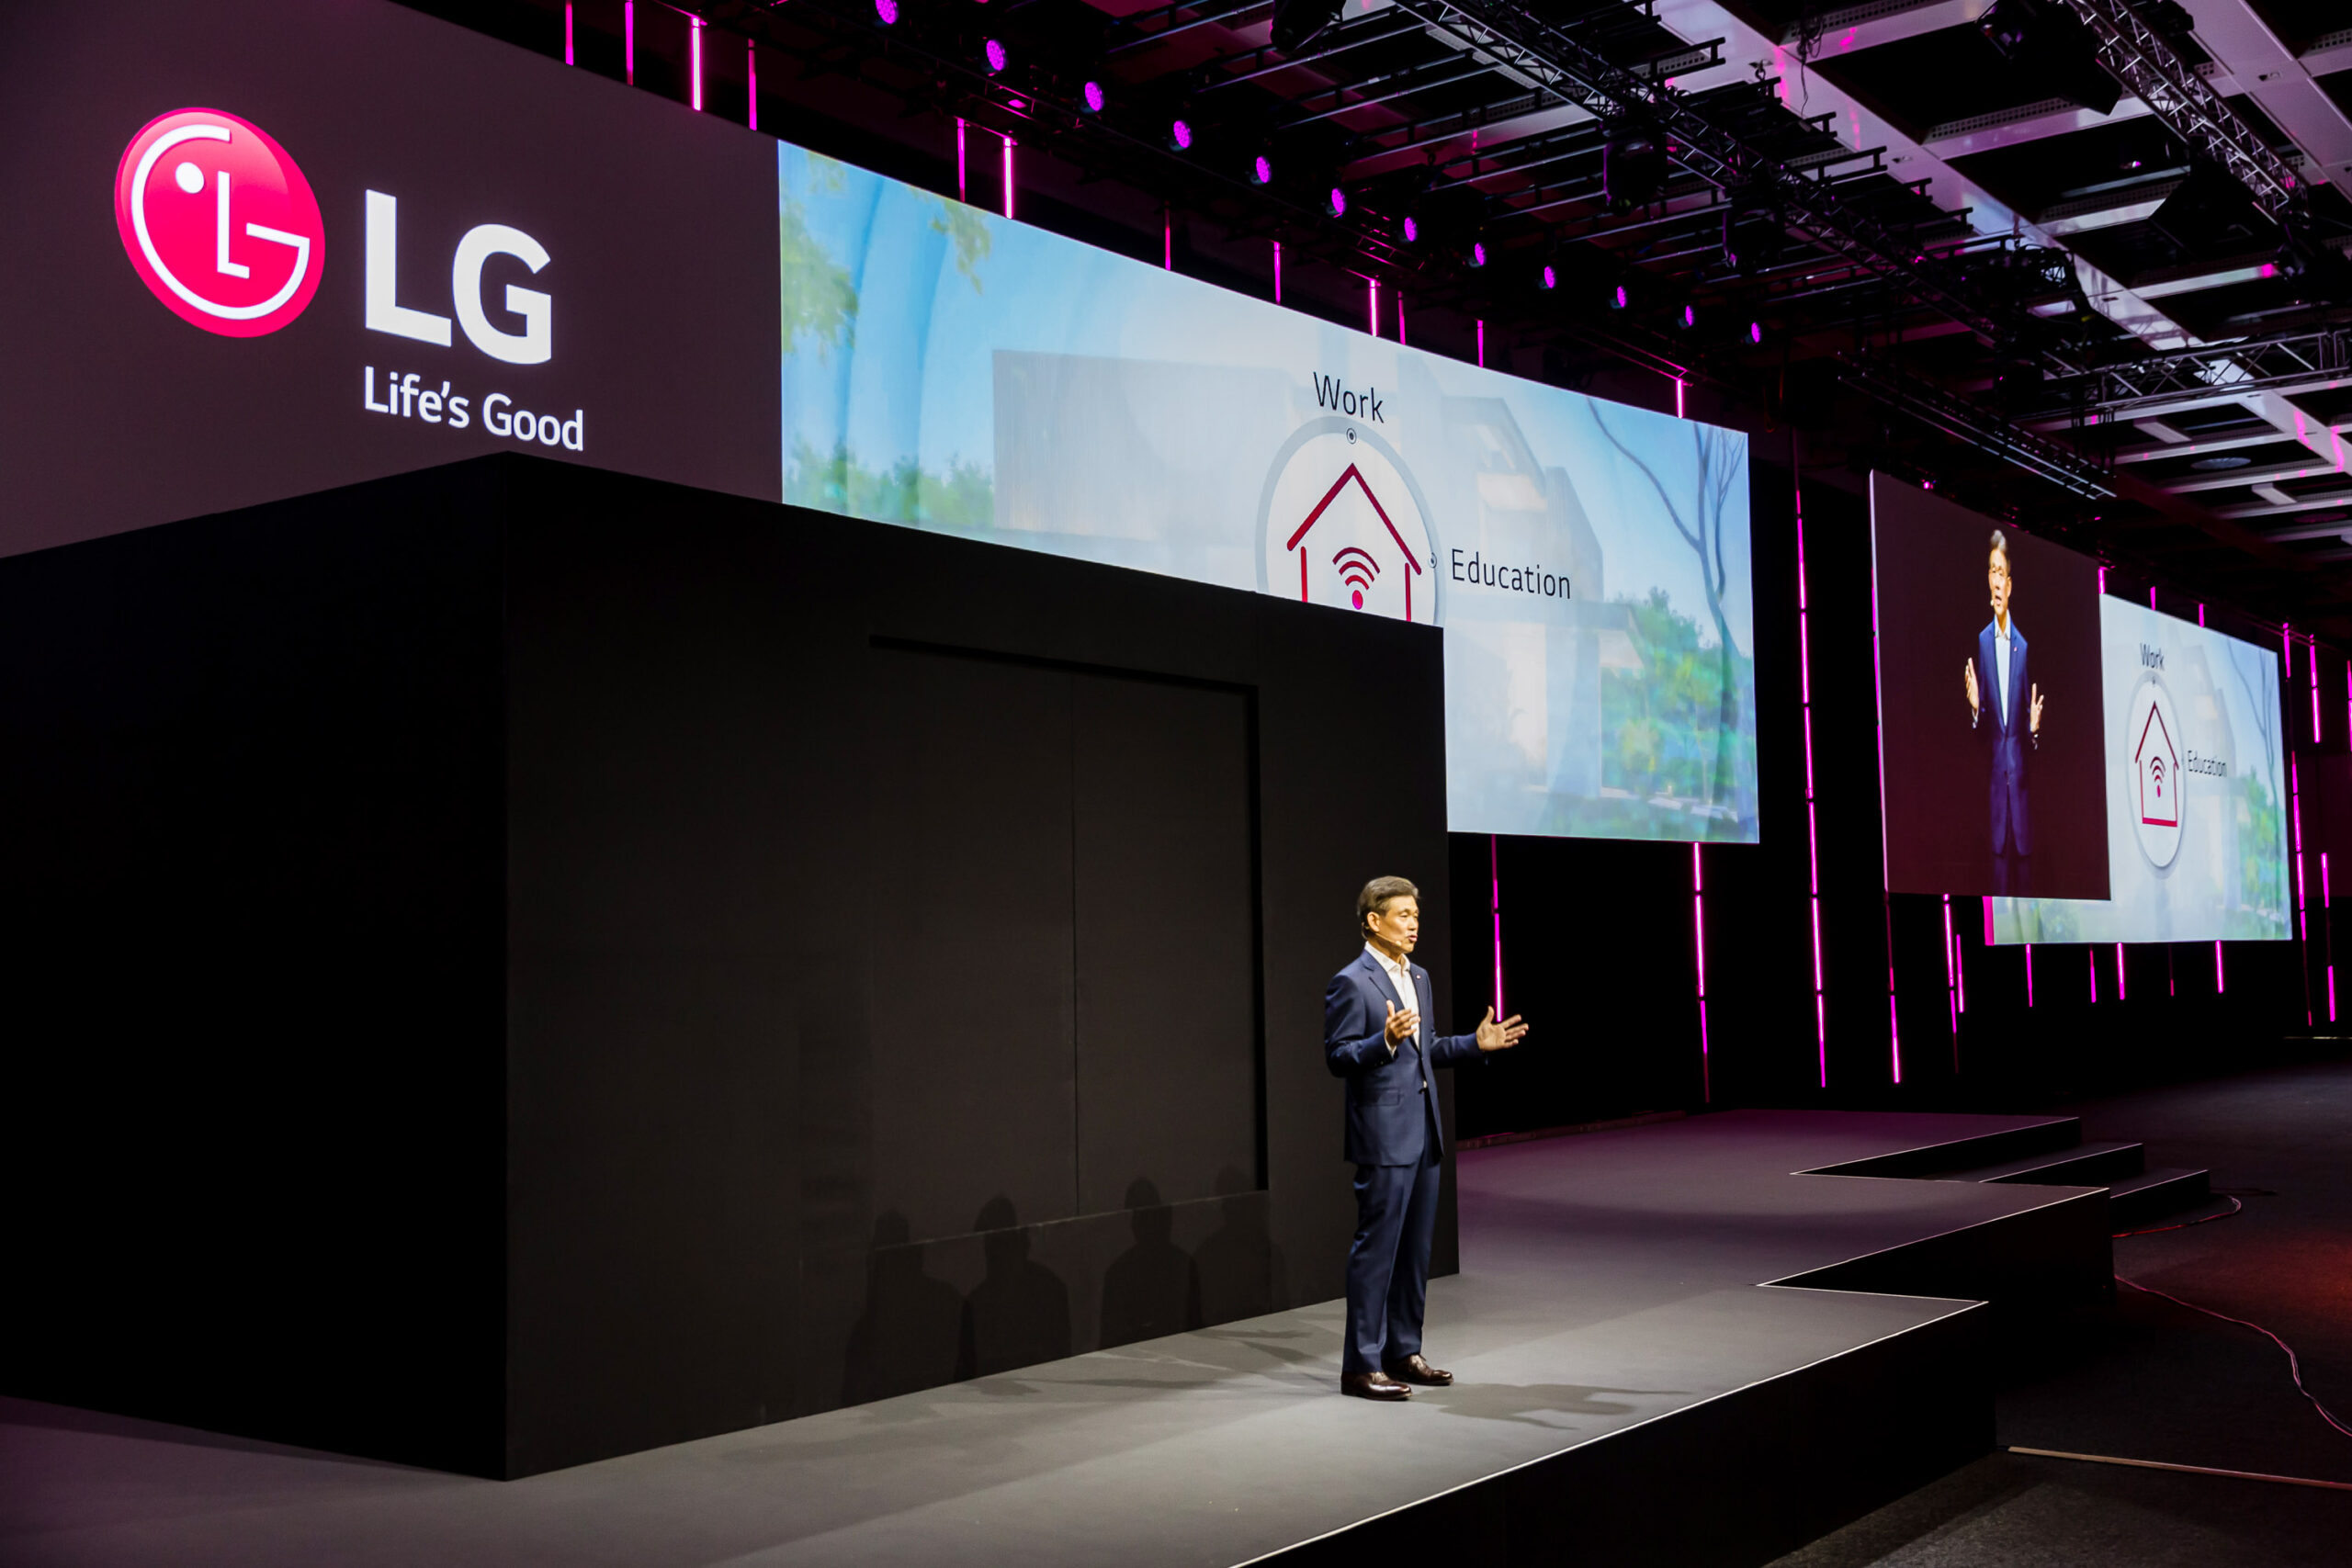 Introduction of LG Electronics' Life's Good from Home vision for the future during IFA 2020